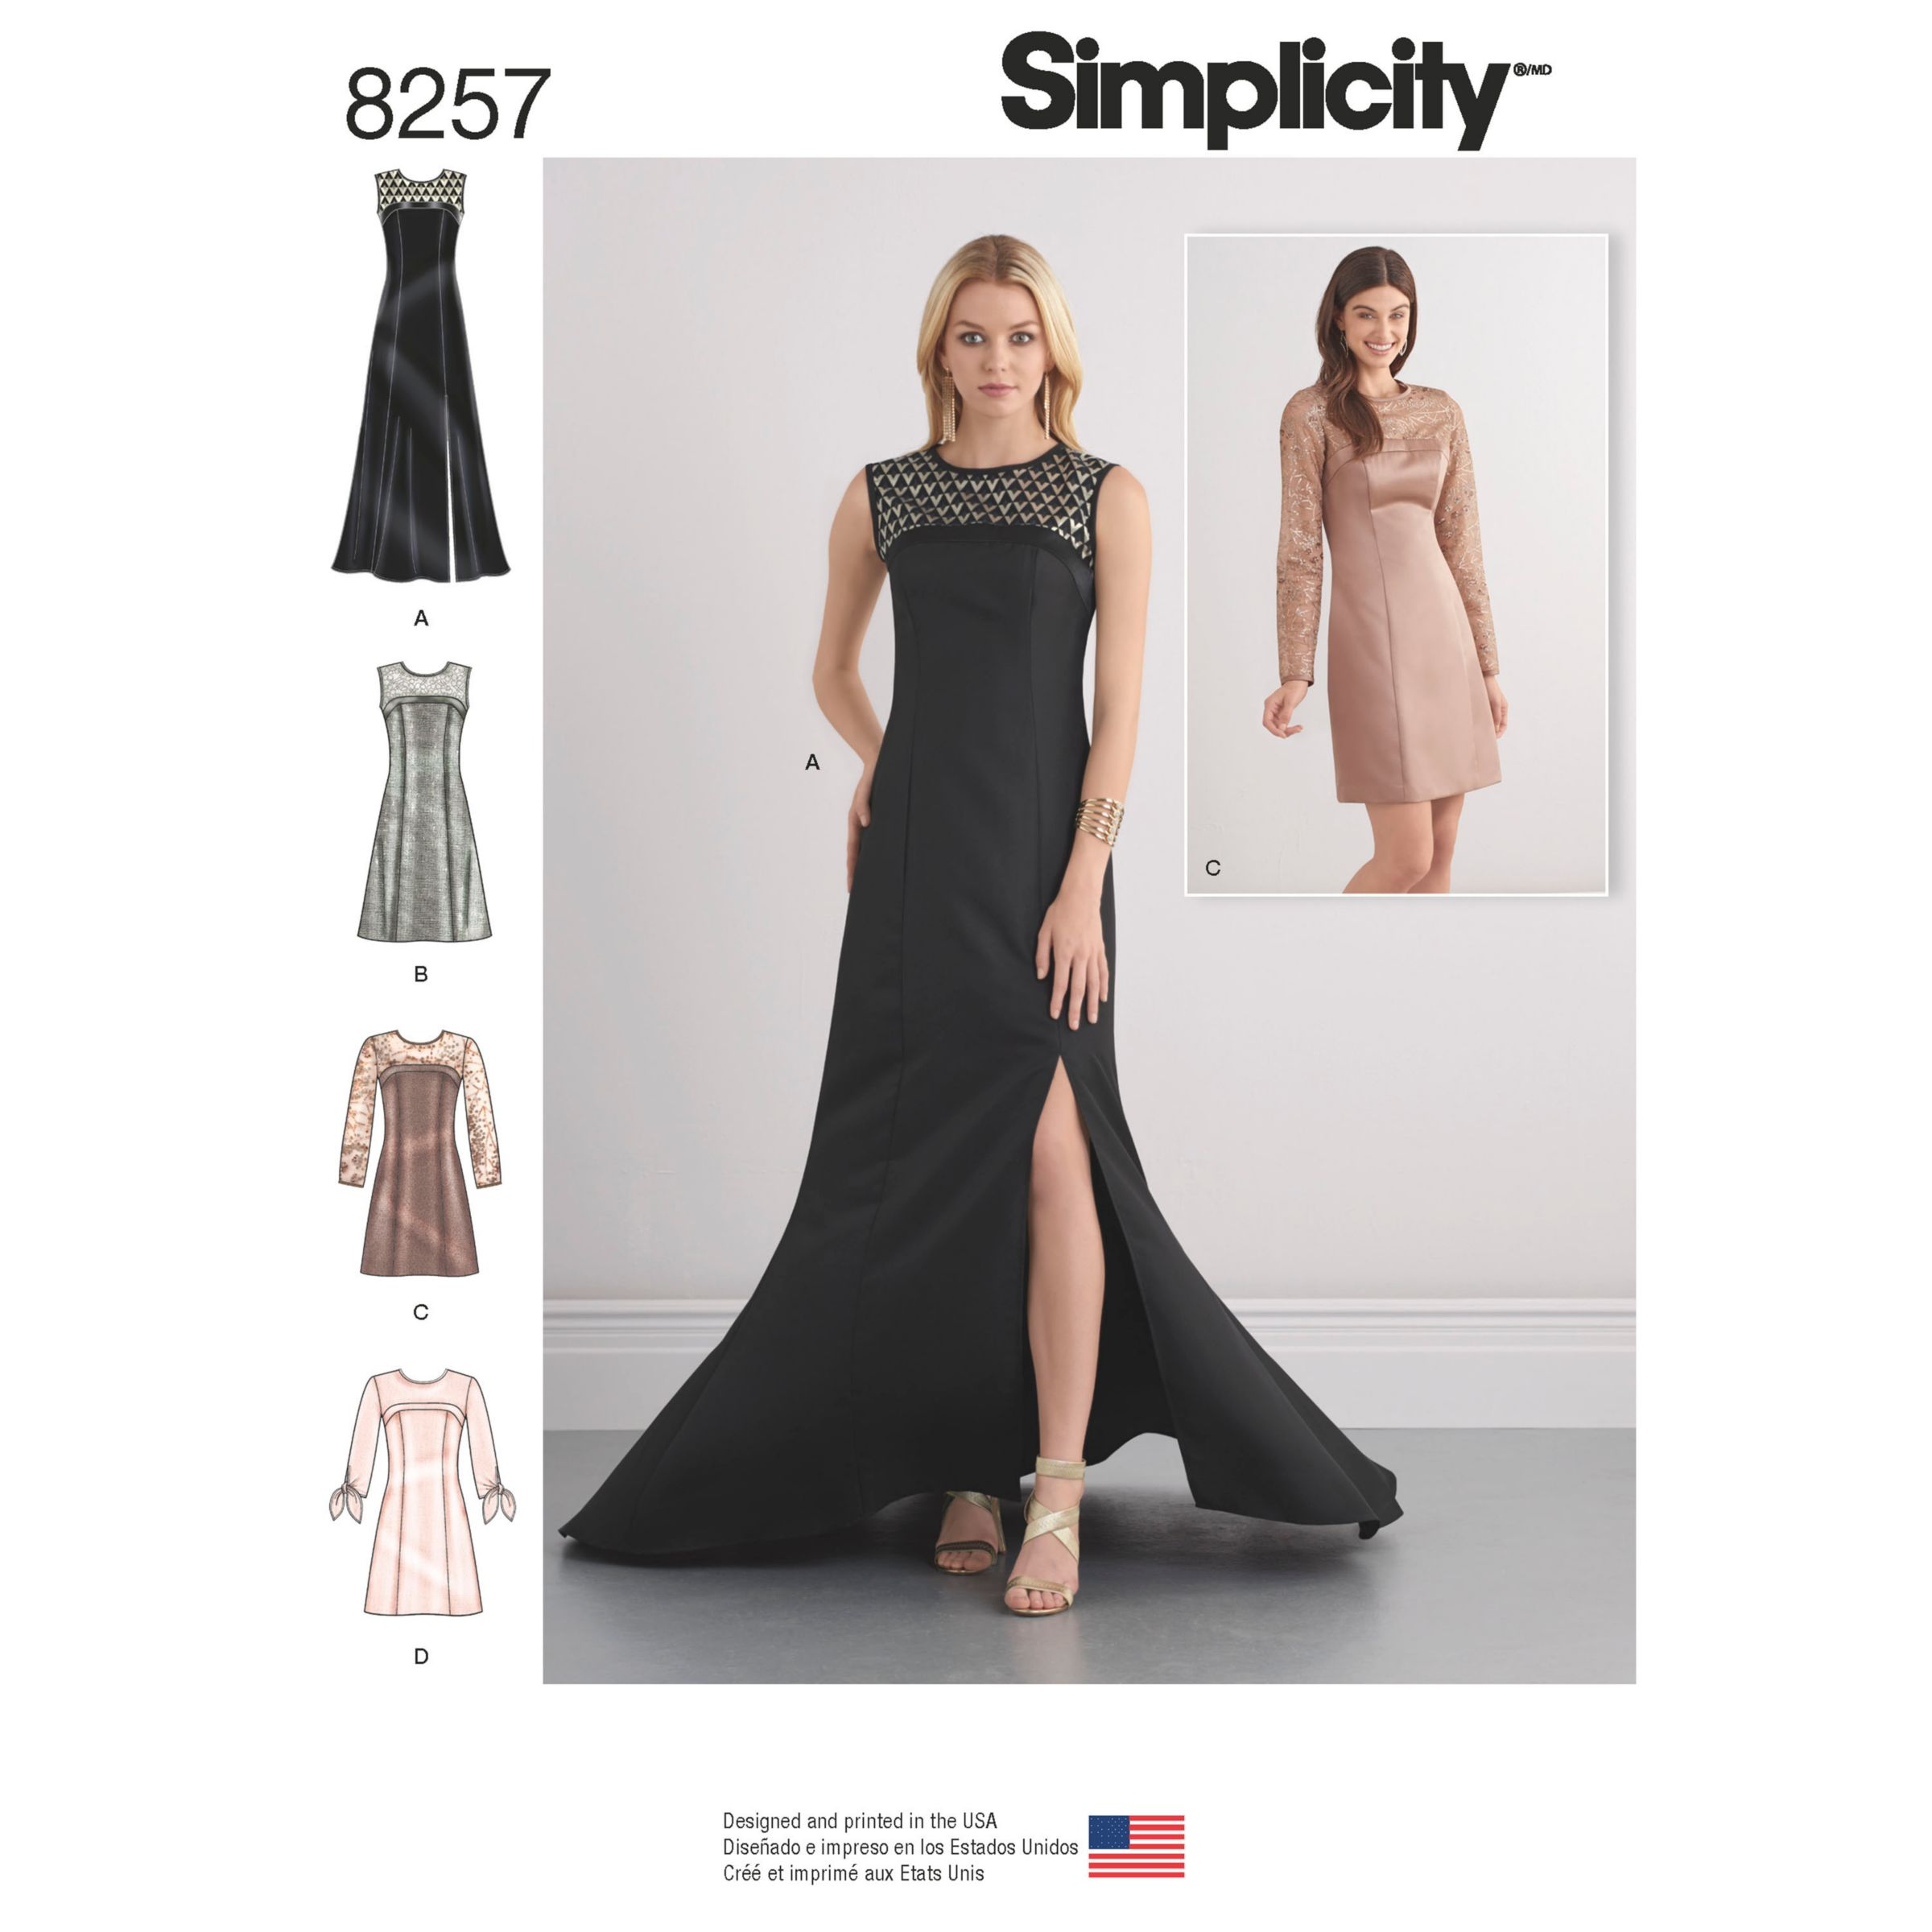 Simplicity Simplicity Special Occasion Dresses and Gown Sewing Pattern, 8257